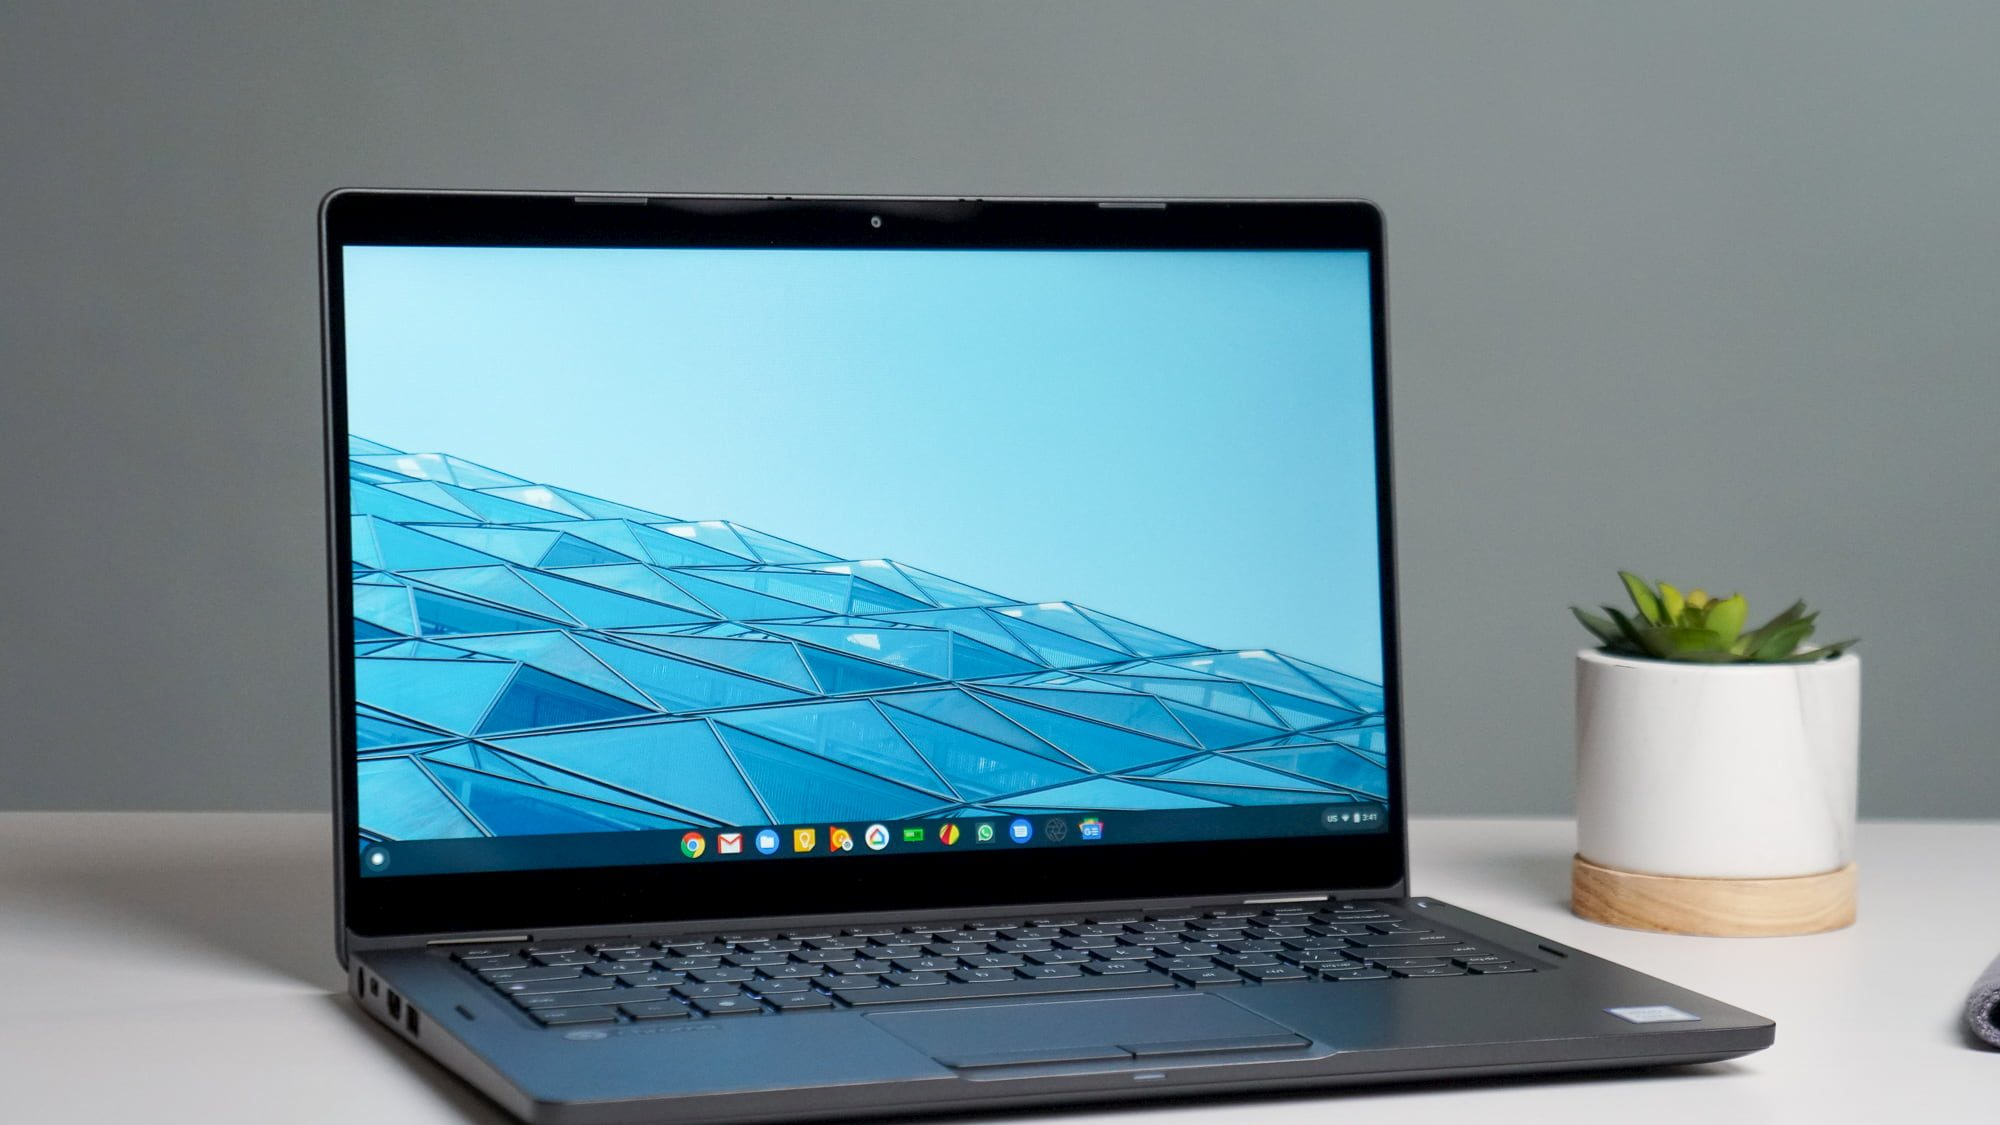 Dell Latitude Chromebook Enterprise 5300 unboxing and first impressions [VIDEO]